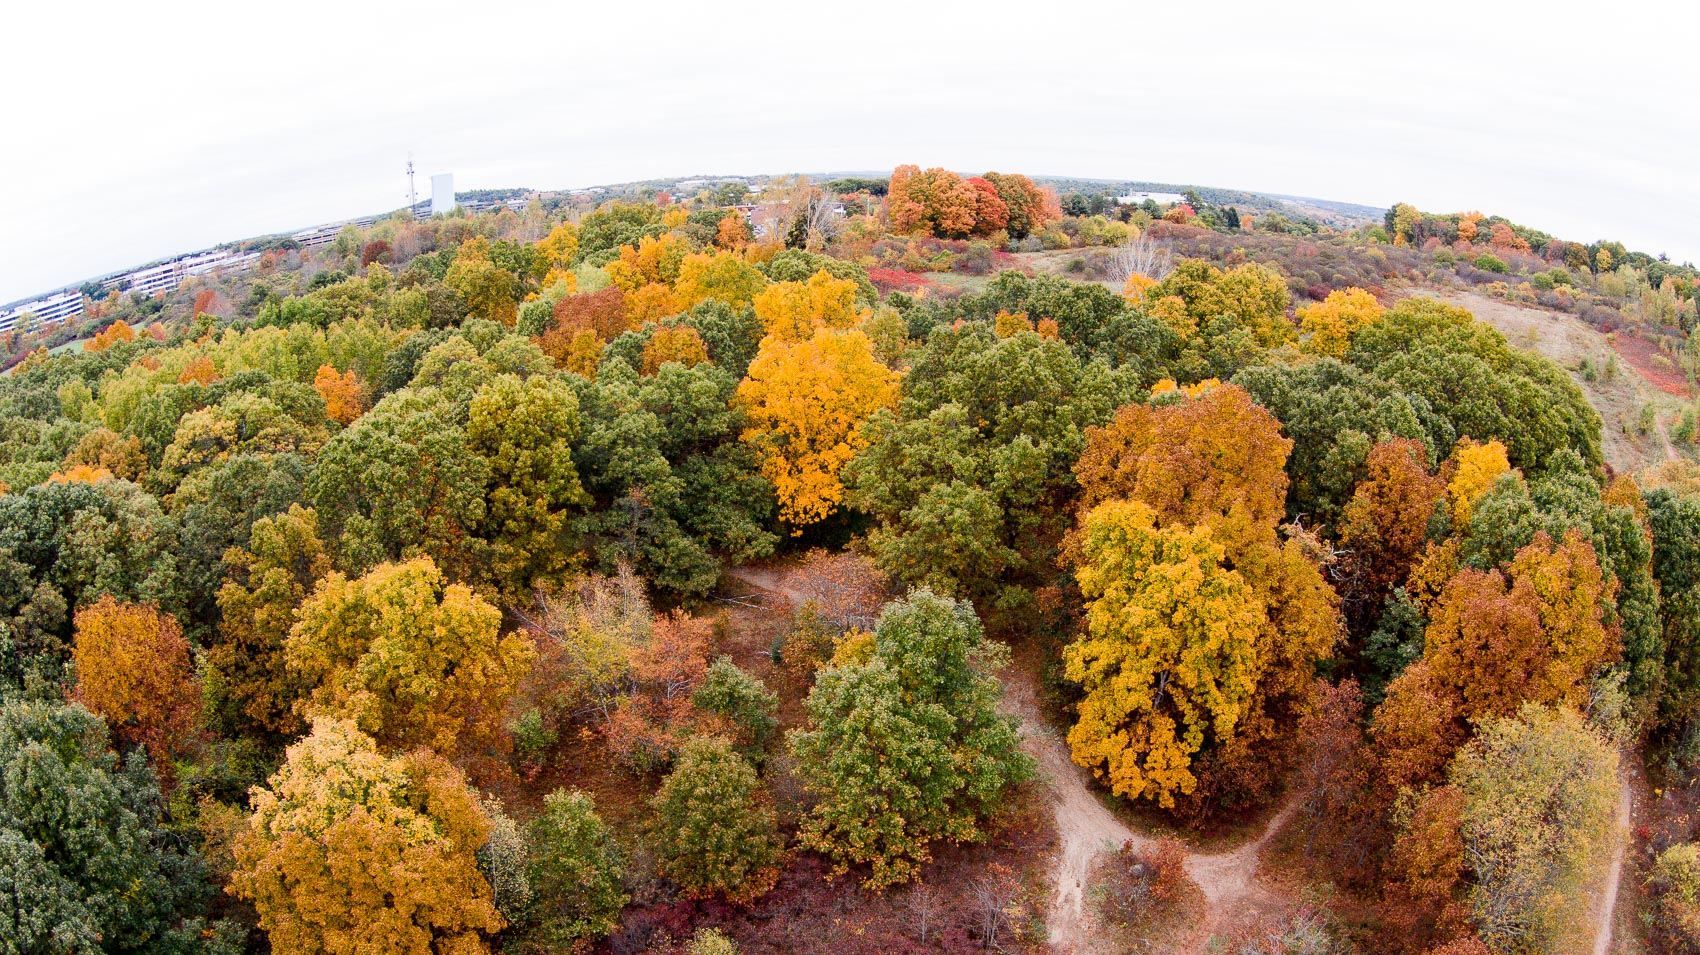 Drone view of trees in park in fall.